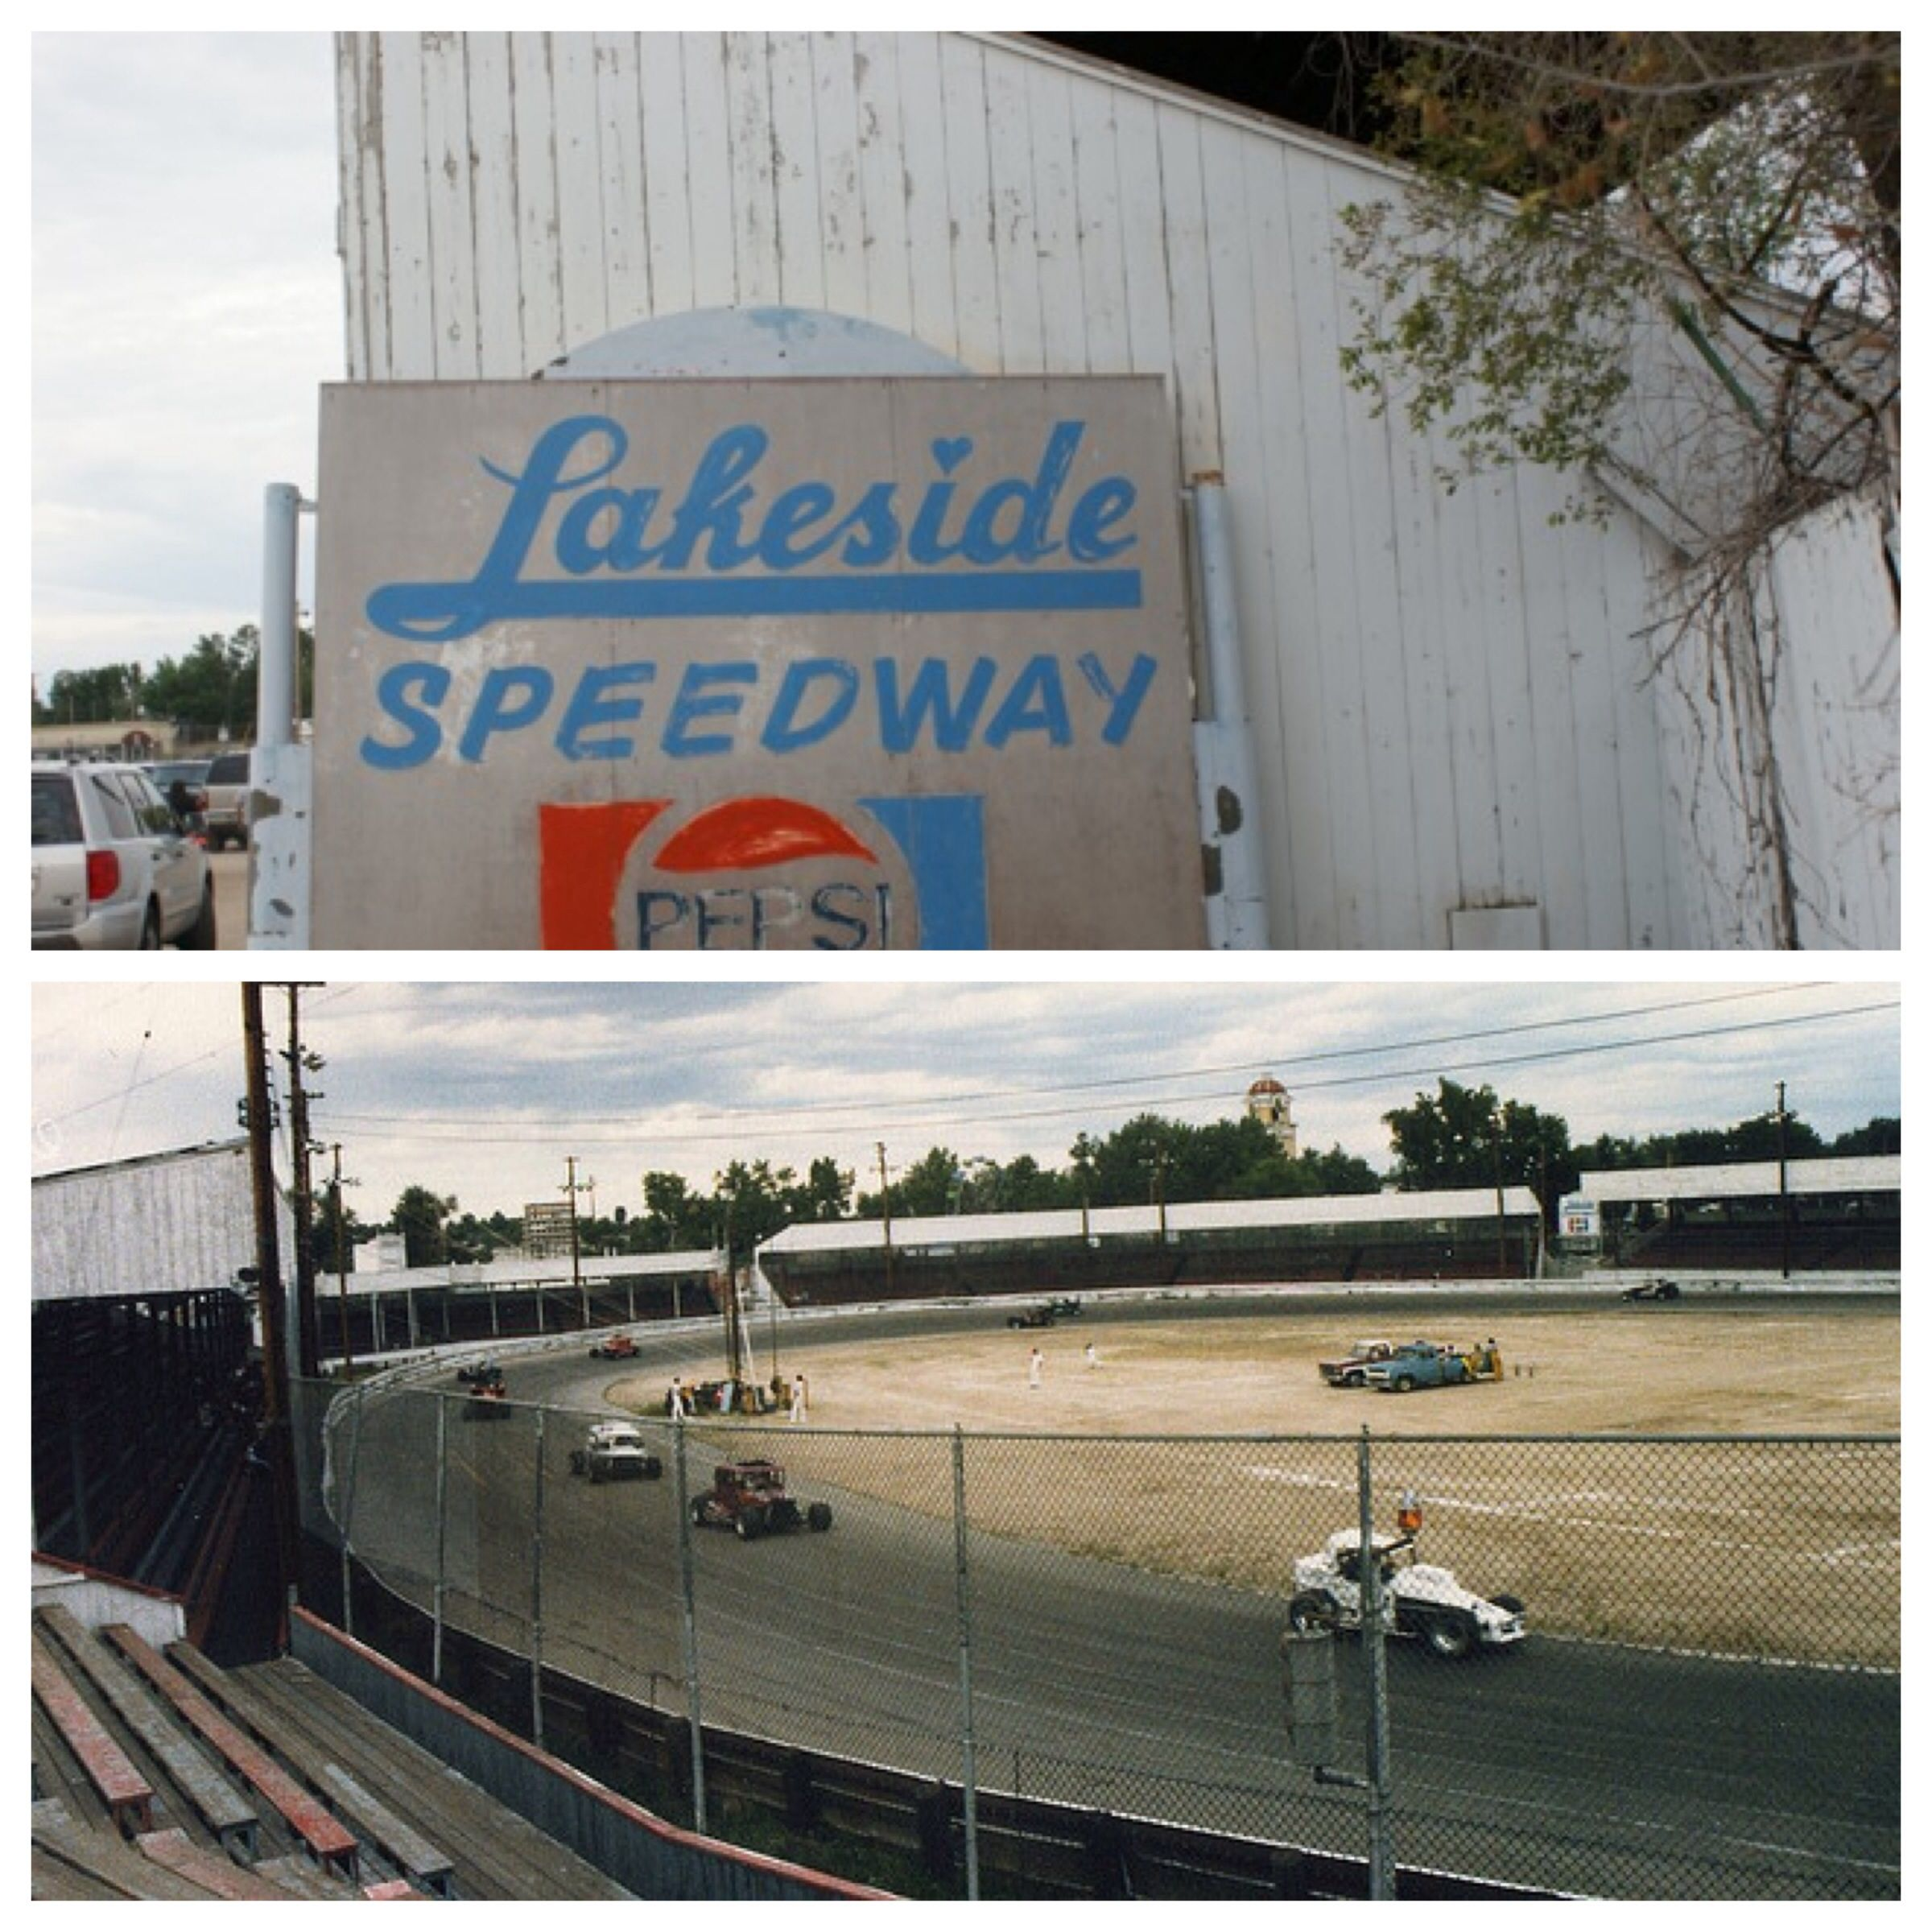 Lakeside Speedway Denver Colorado I Loved Going To The Races